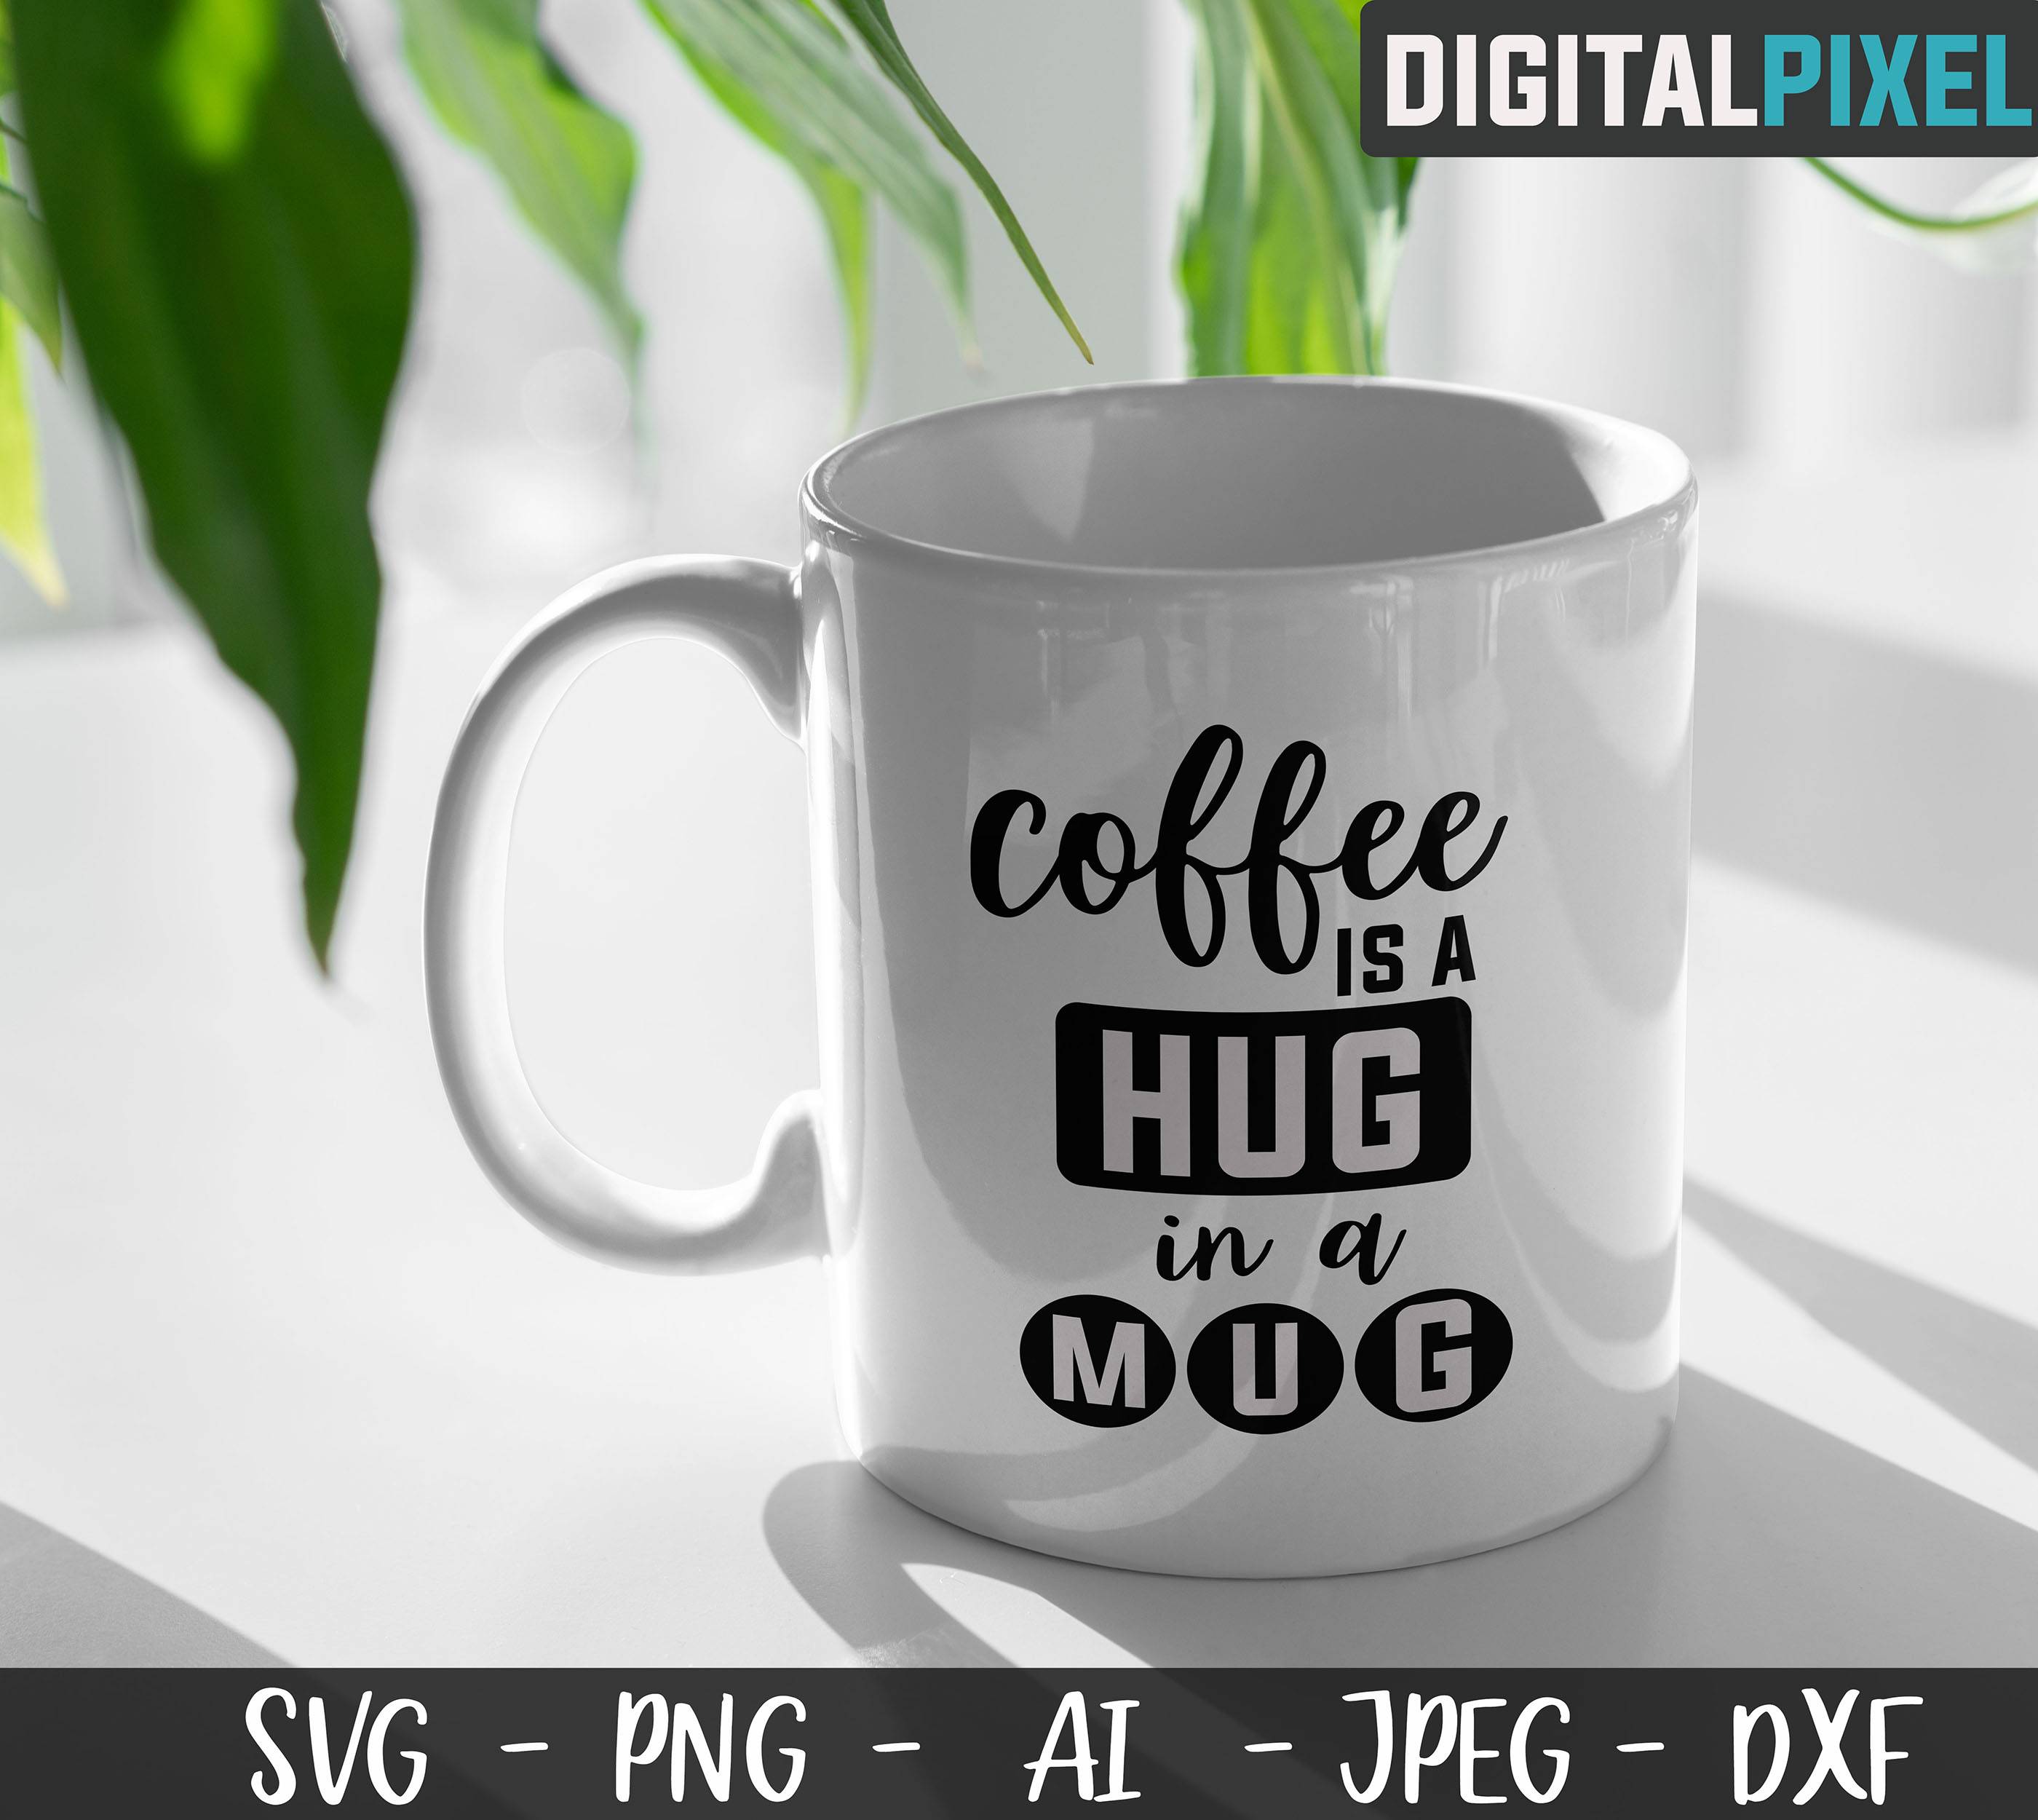 Coffee Bundle SVG PNG JPEG DXF Circut Cut Coffee Crafters example image 4